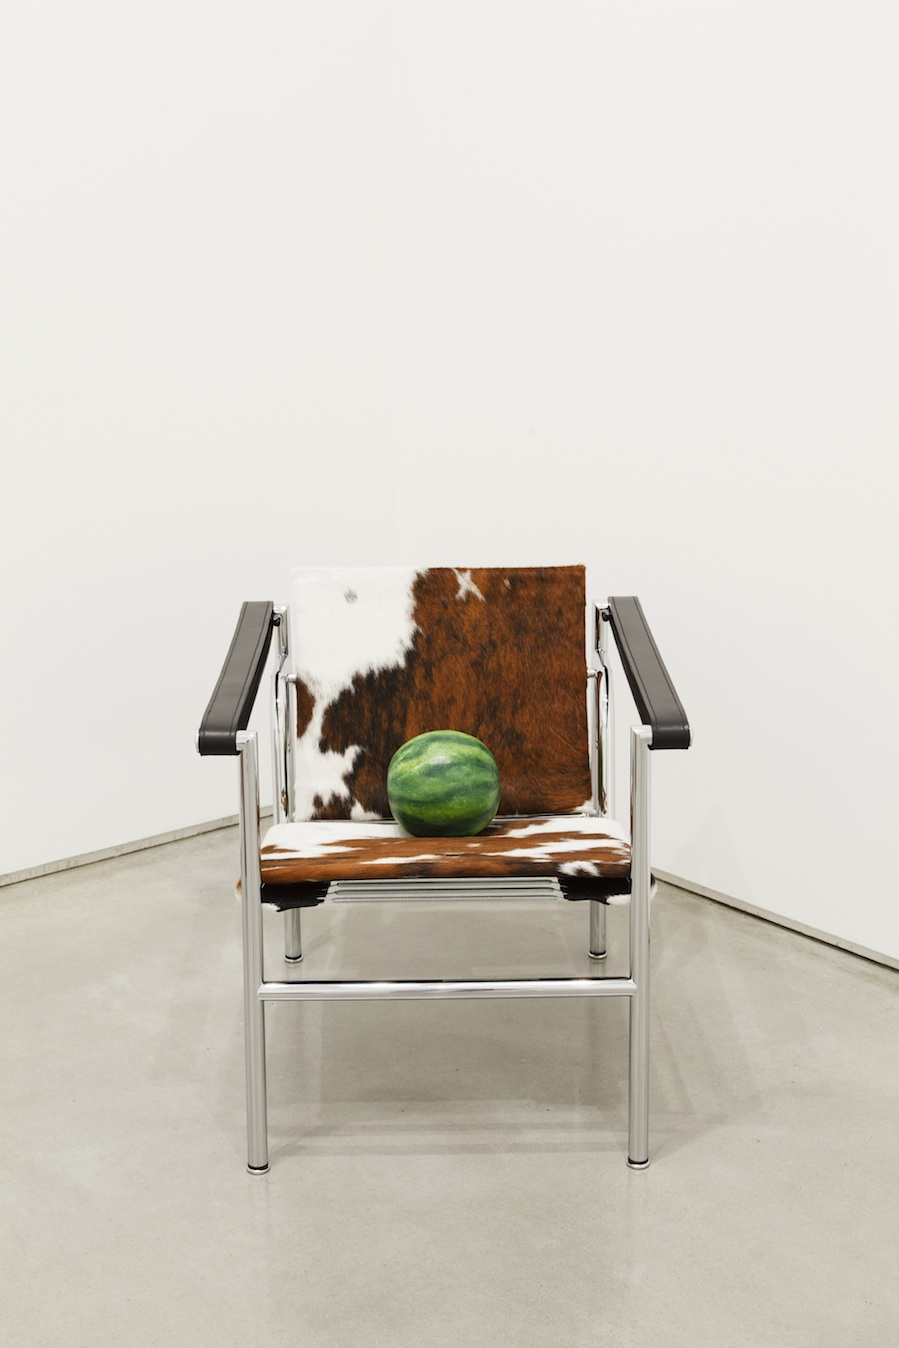 Margaret Lee, Watermelon (that you have been saving for), 2013, cowhide sling chair, plaster, and acrylic paint, variable